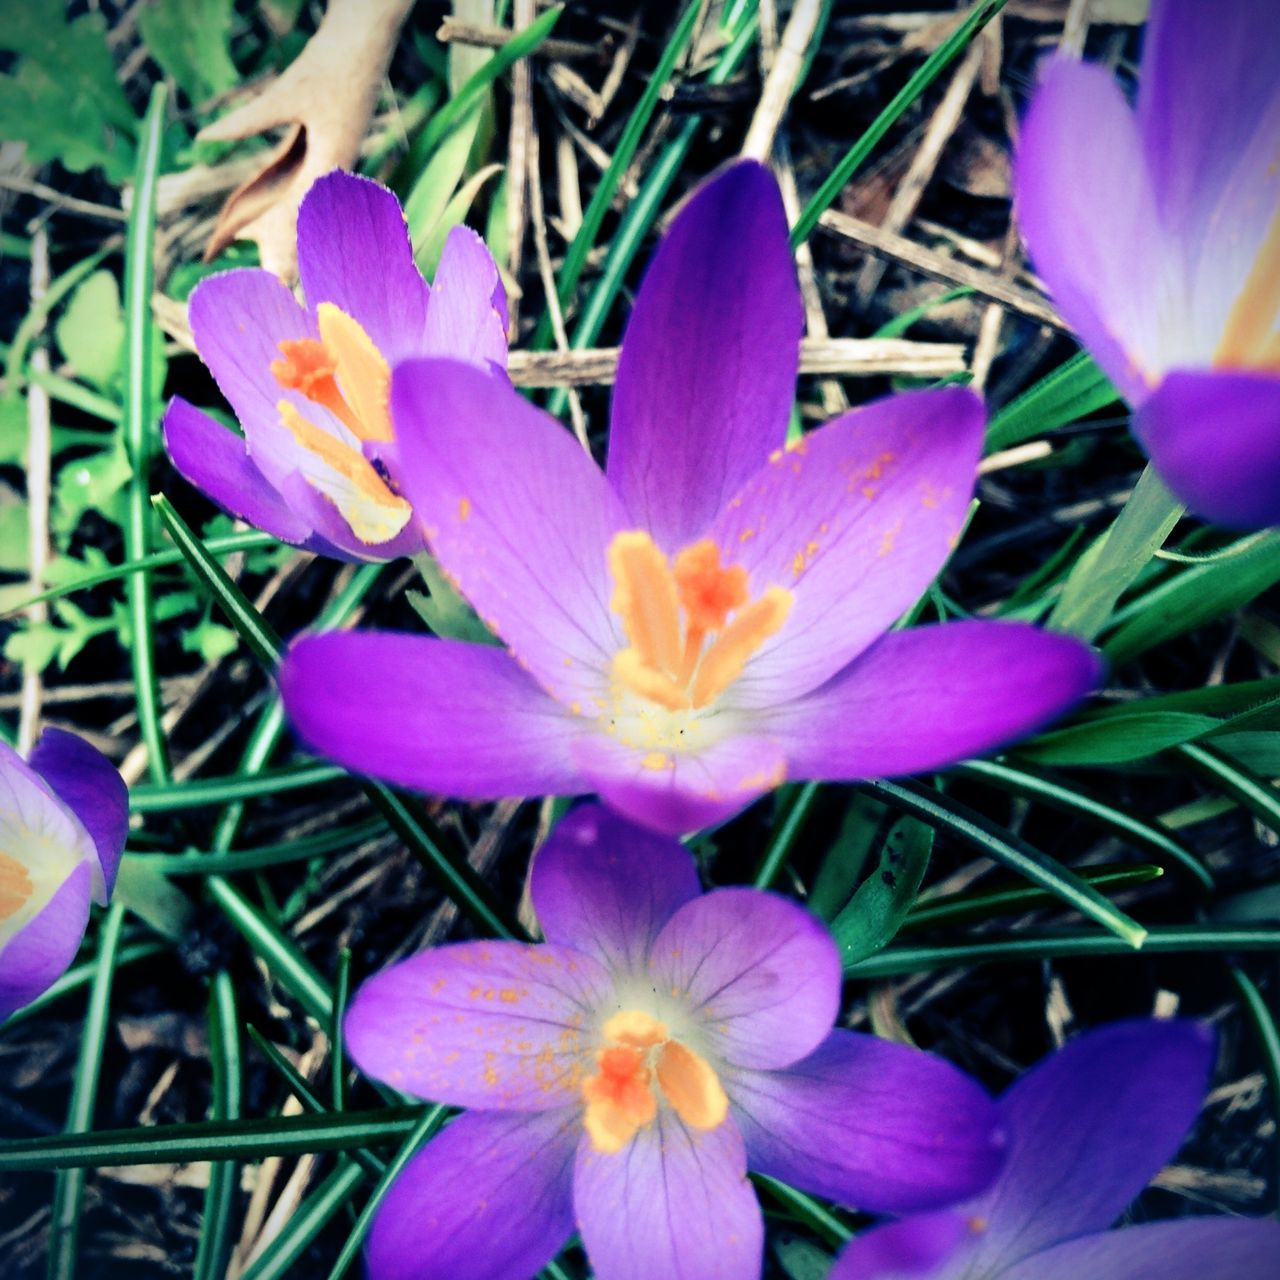 flower, petal, growth, beauty in nature, fragility, nature, flower head, purple, no people, plant, freshness, blooming, close-up, outdoors, day, crocus